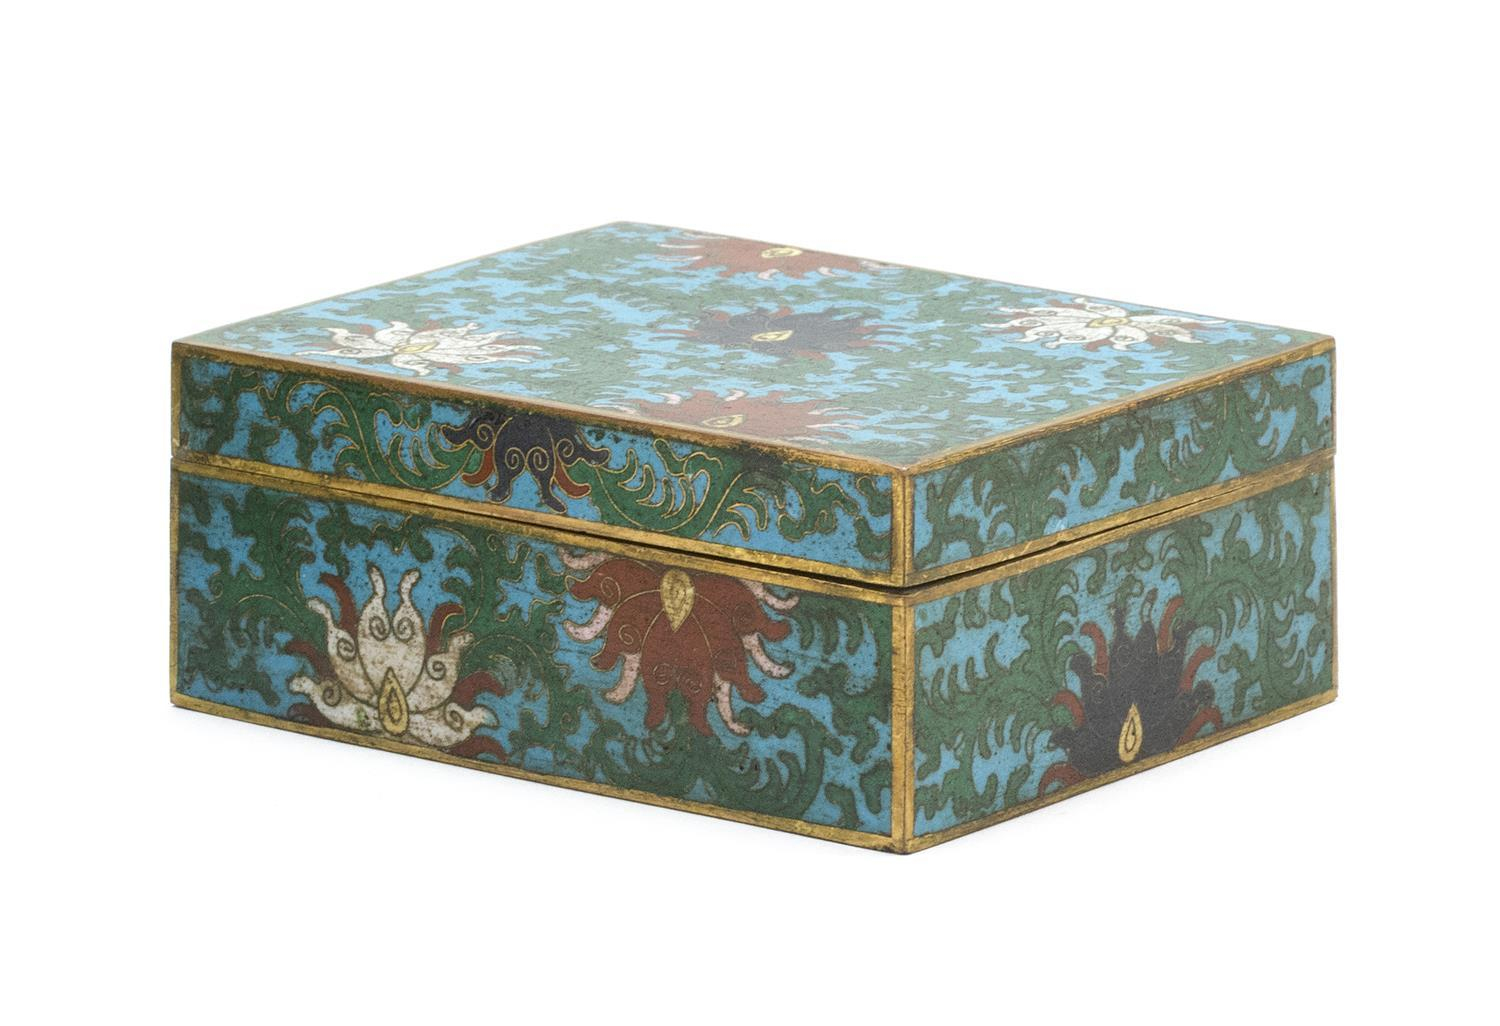 """CHINESE CLOISONNÉ ENAMEL COVERED BOX Rectangular, with passionflower design on a blue ground. Two-character """"Ta Ming"""" mark on base...."""